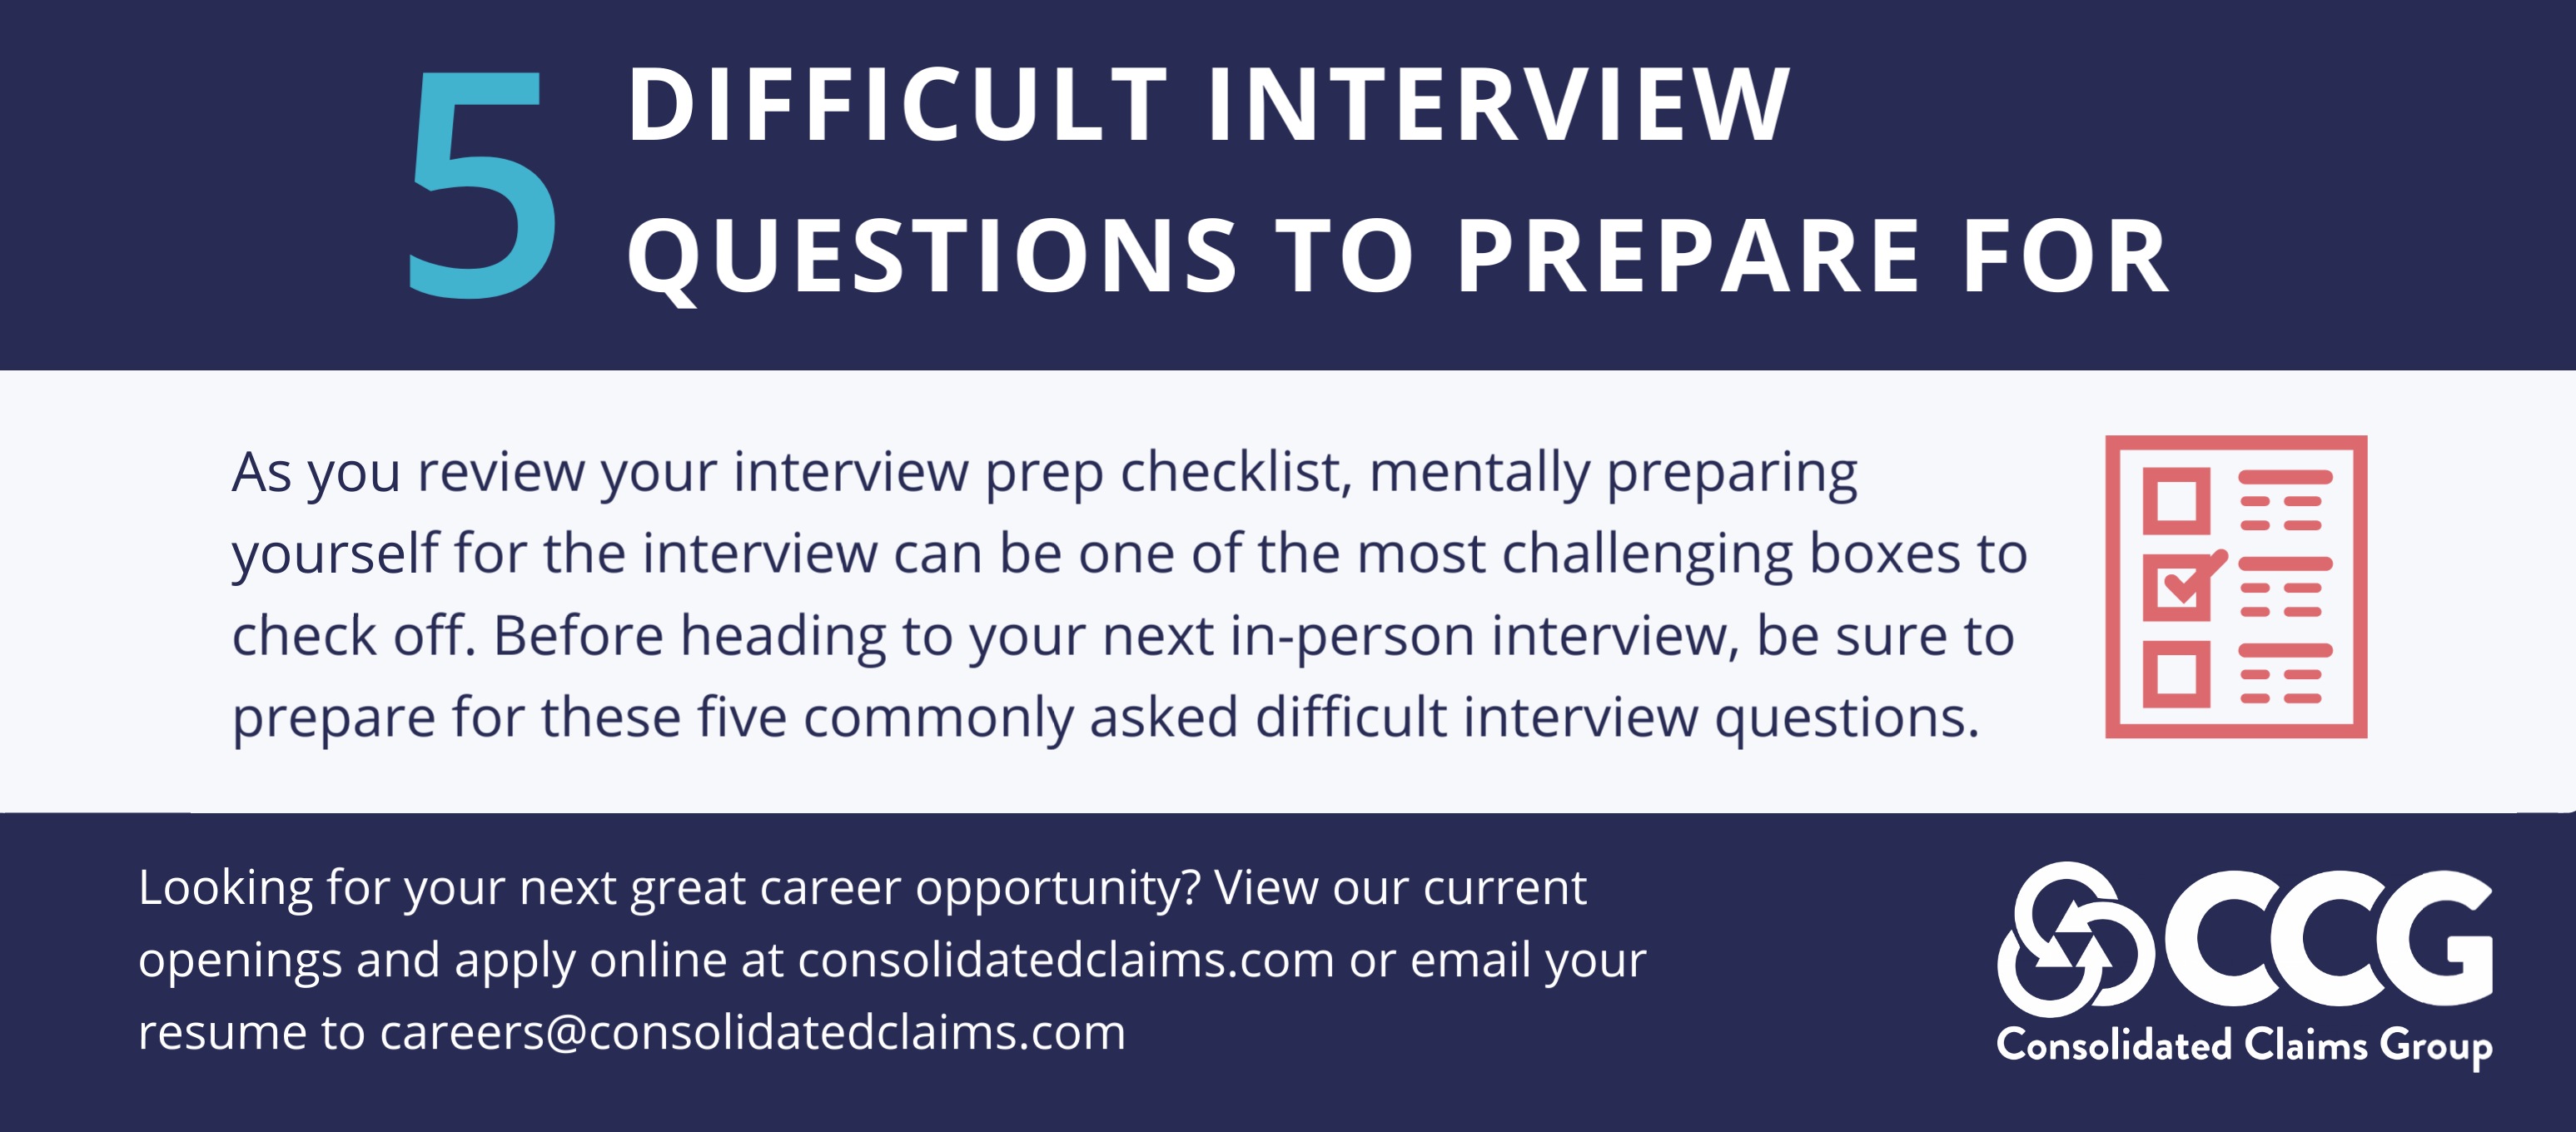 5 Difficult Interview Questions to Prepare For